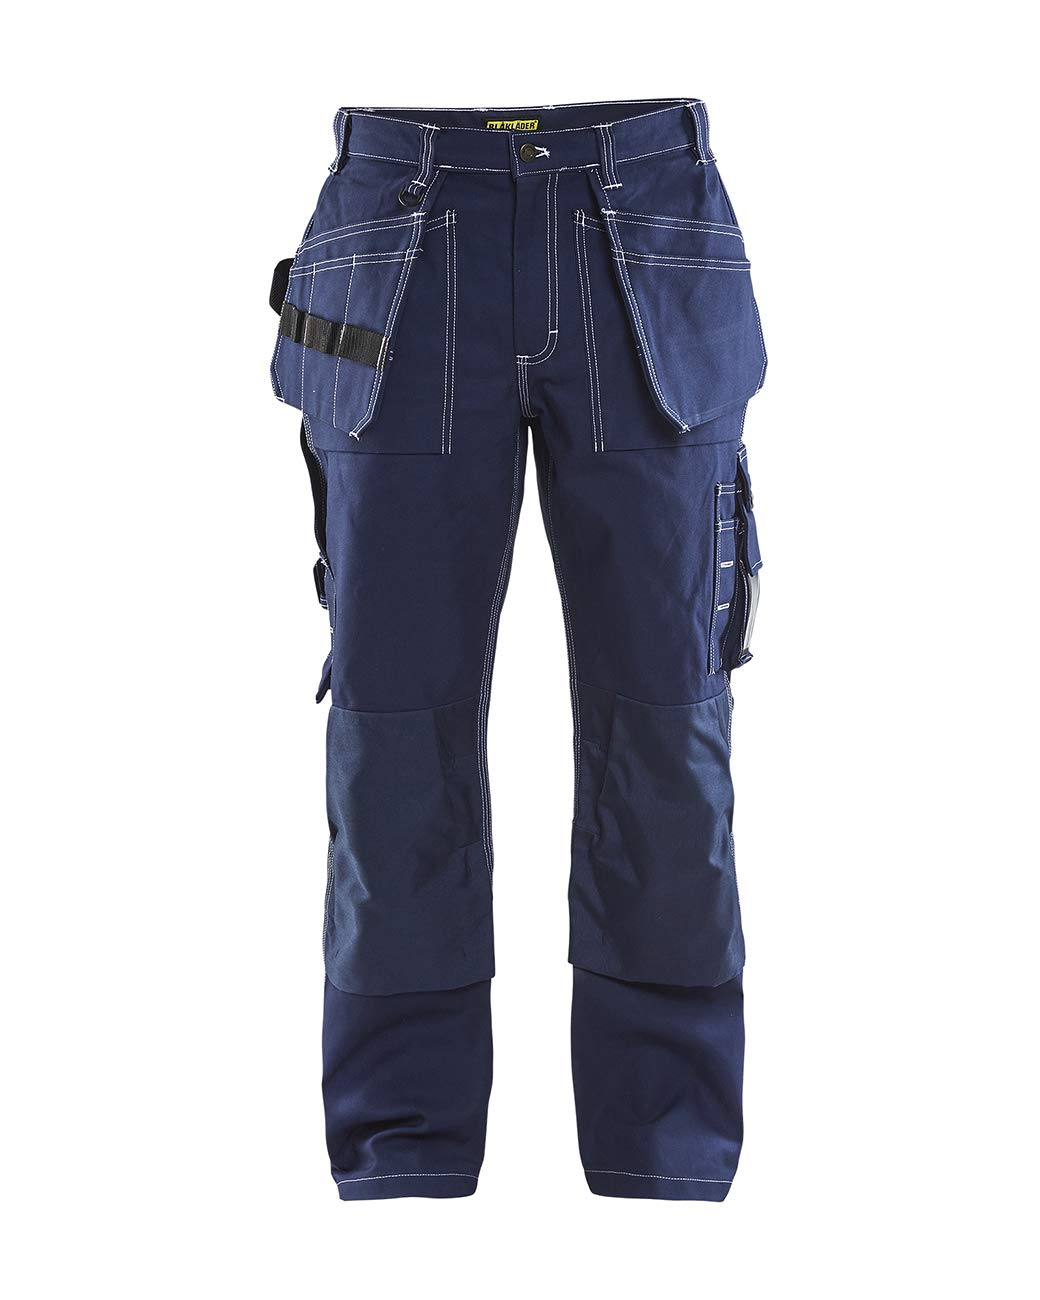 BLAKLADER KNEEPAD WORK TROUSERS WITH NAIL POCKETS